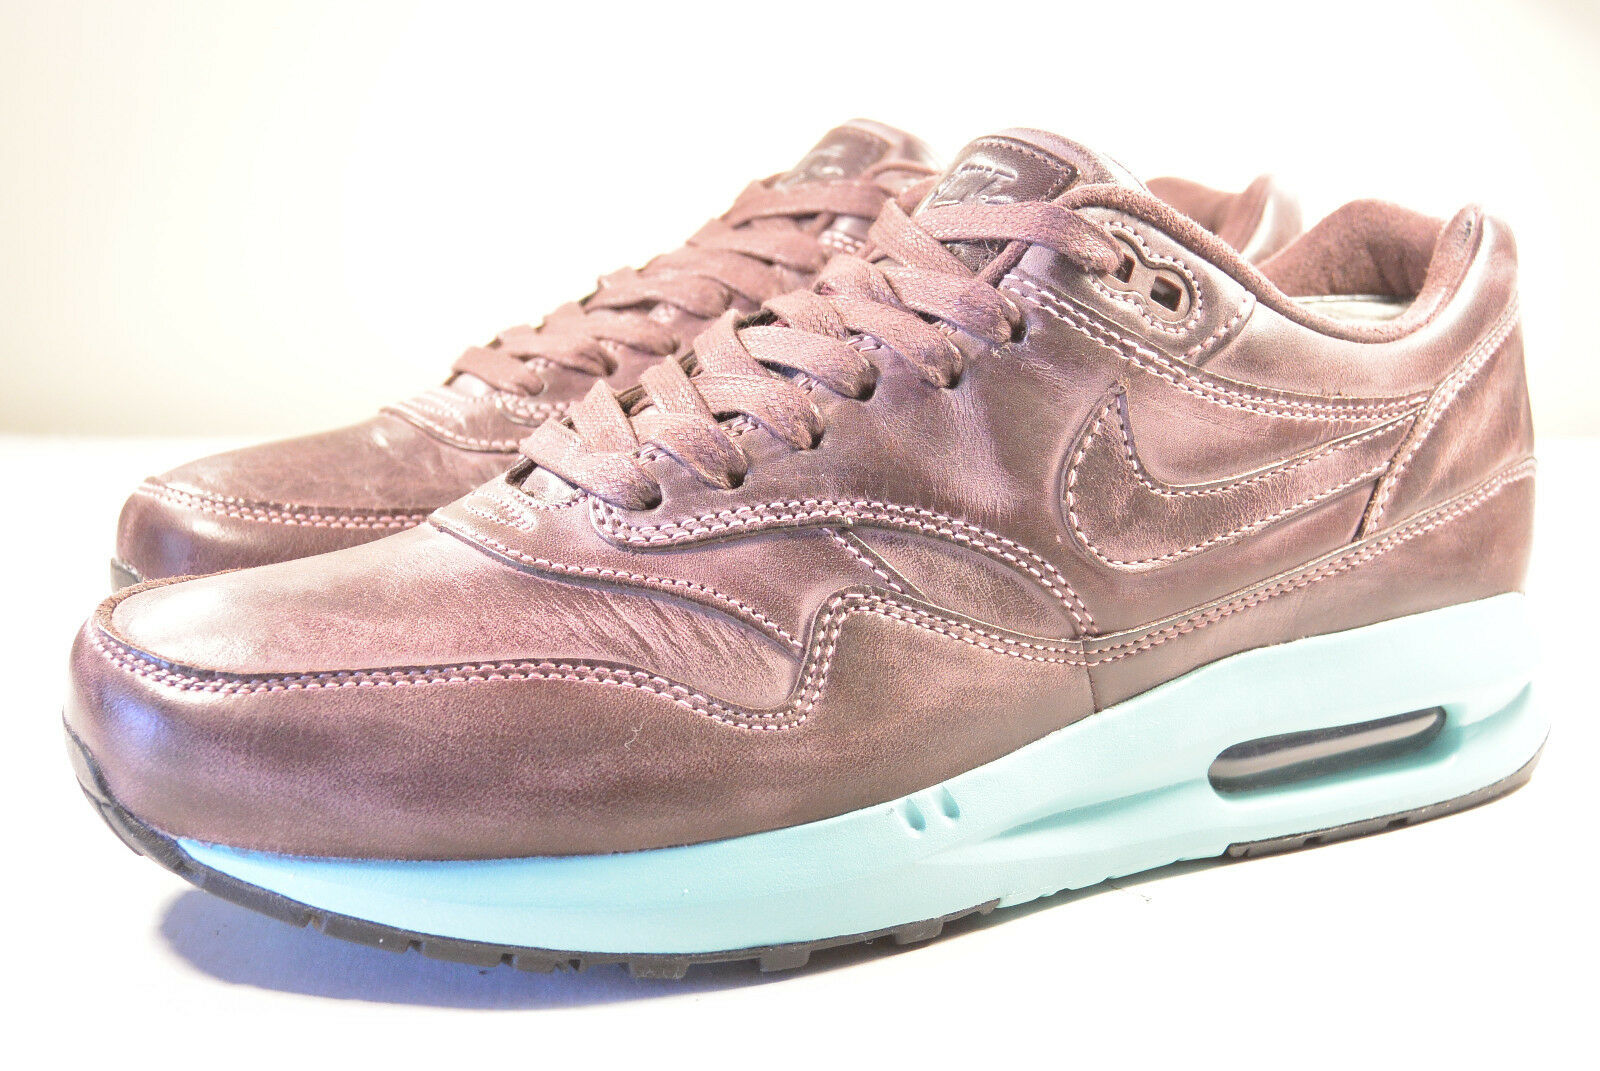 DS 2014 NIKE AIR MAX LUNAR1 1 LTR QS BURNISHED LEATHER PACK MAHOGANY 8 - 12